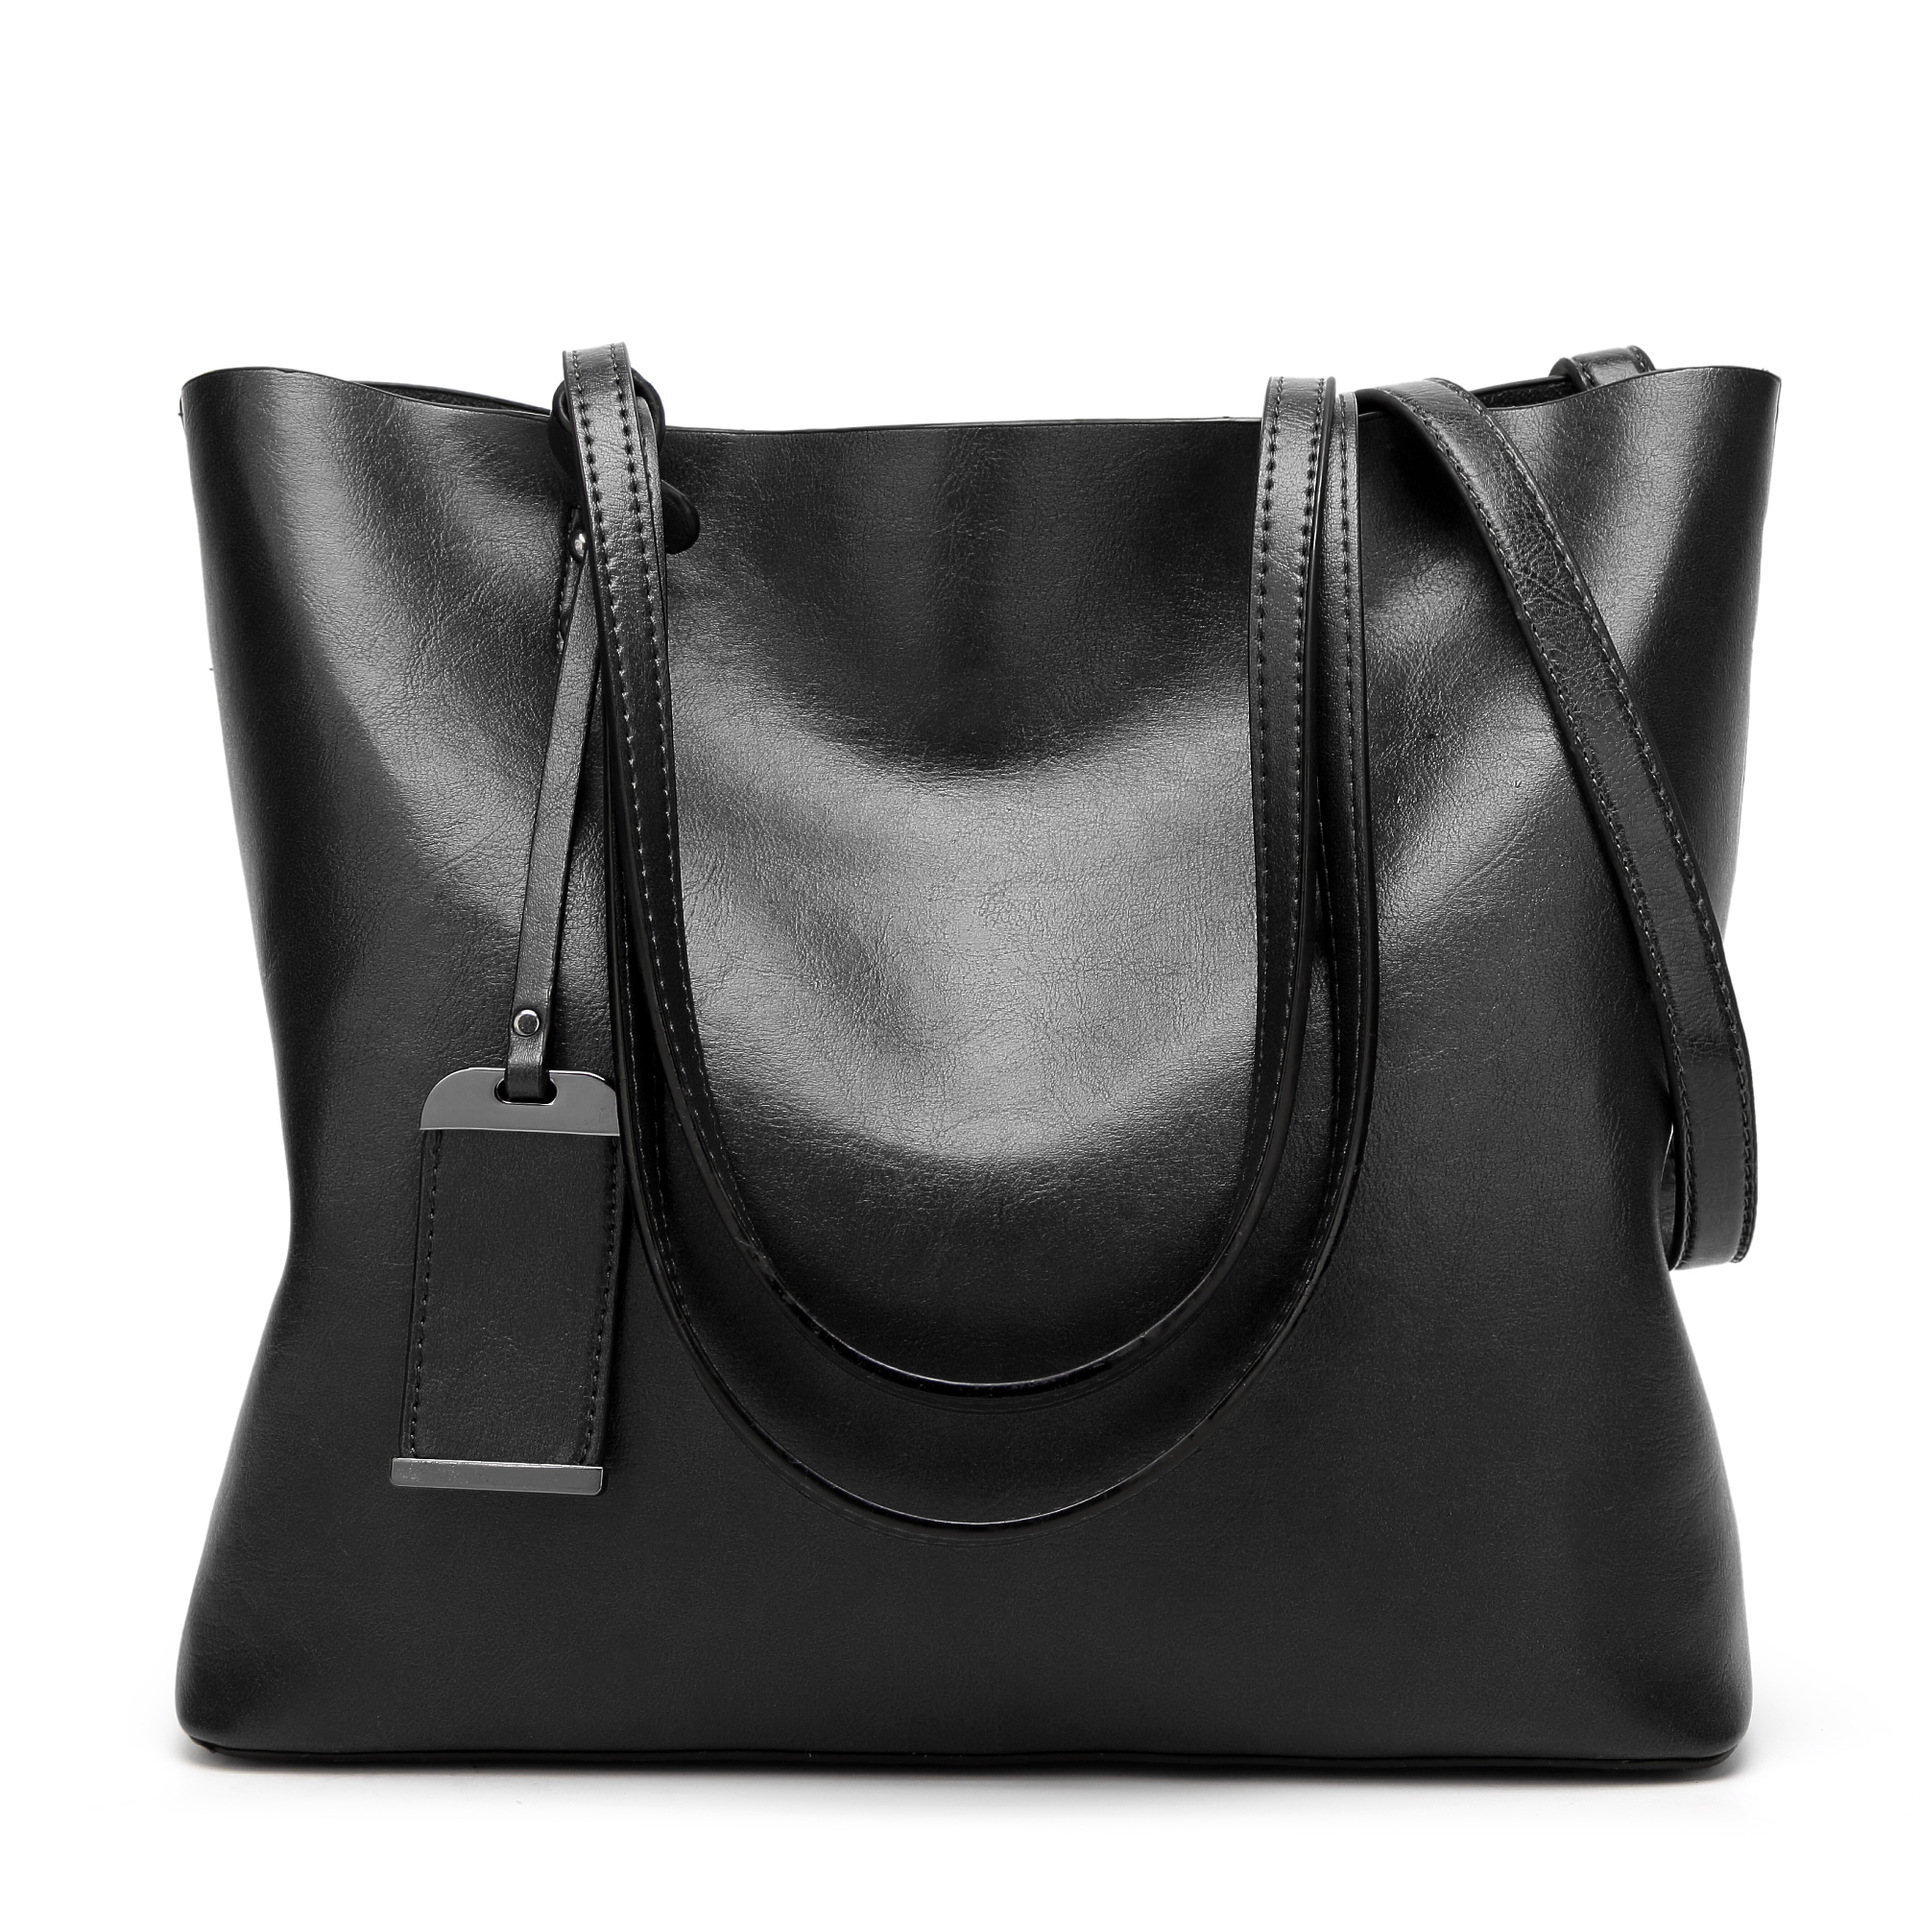 New Fashion PU Leather Women Handbag Messenger Bags Solid Color Casual Tote Oil Wax Leather Shoulder Black Bag Crossbody Bag new 2016 fashion women handbag pu leather shoulder bags woman fashion trends metal logo messenger shoulder bag ft56